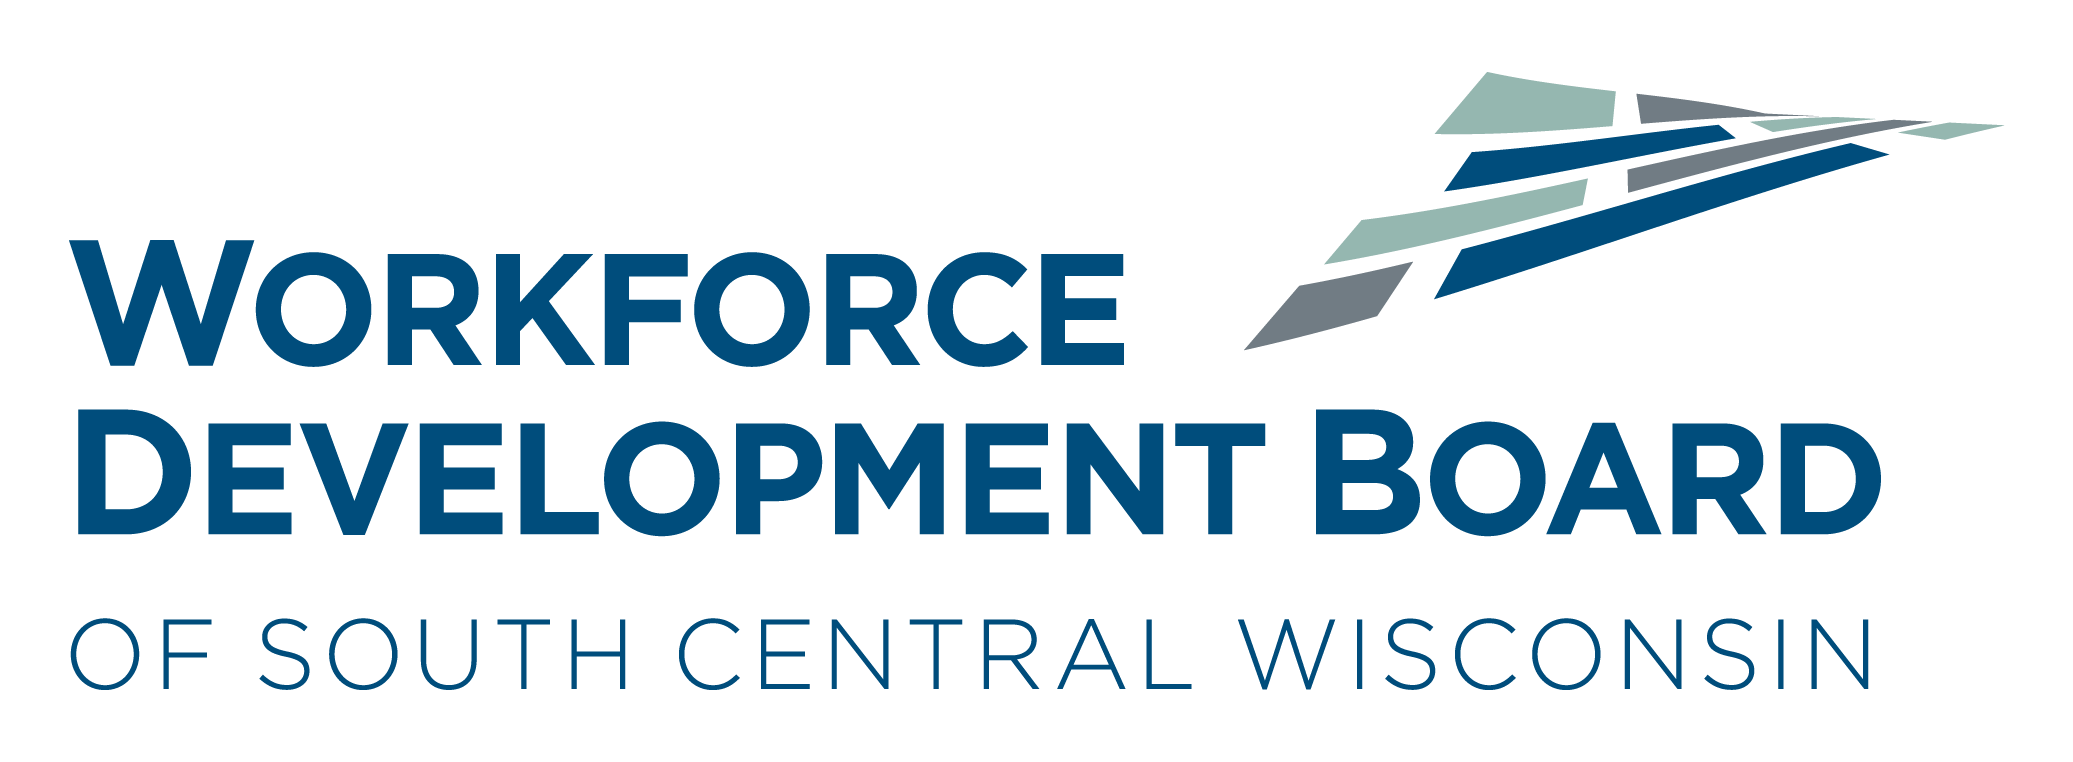 Workforce Development Board logo